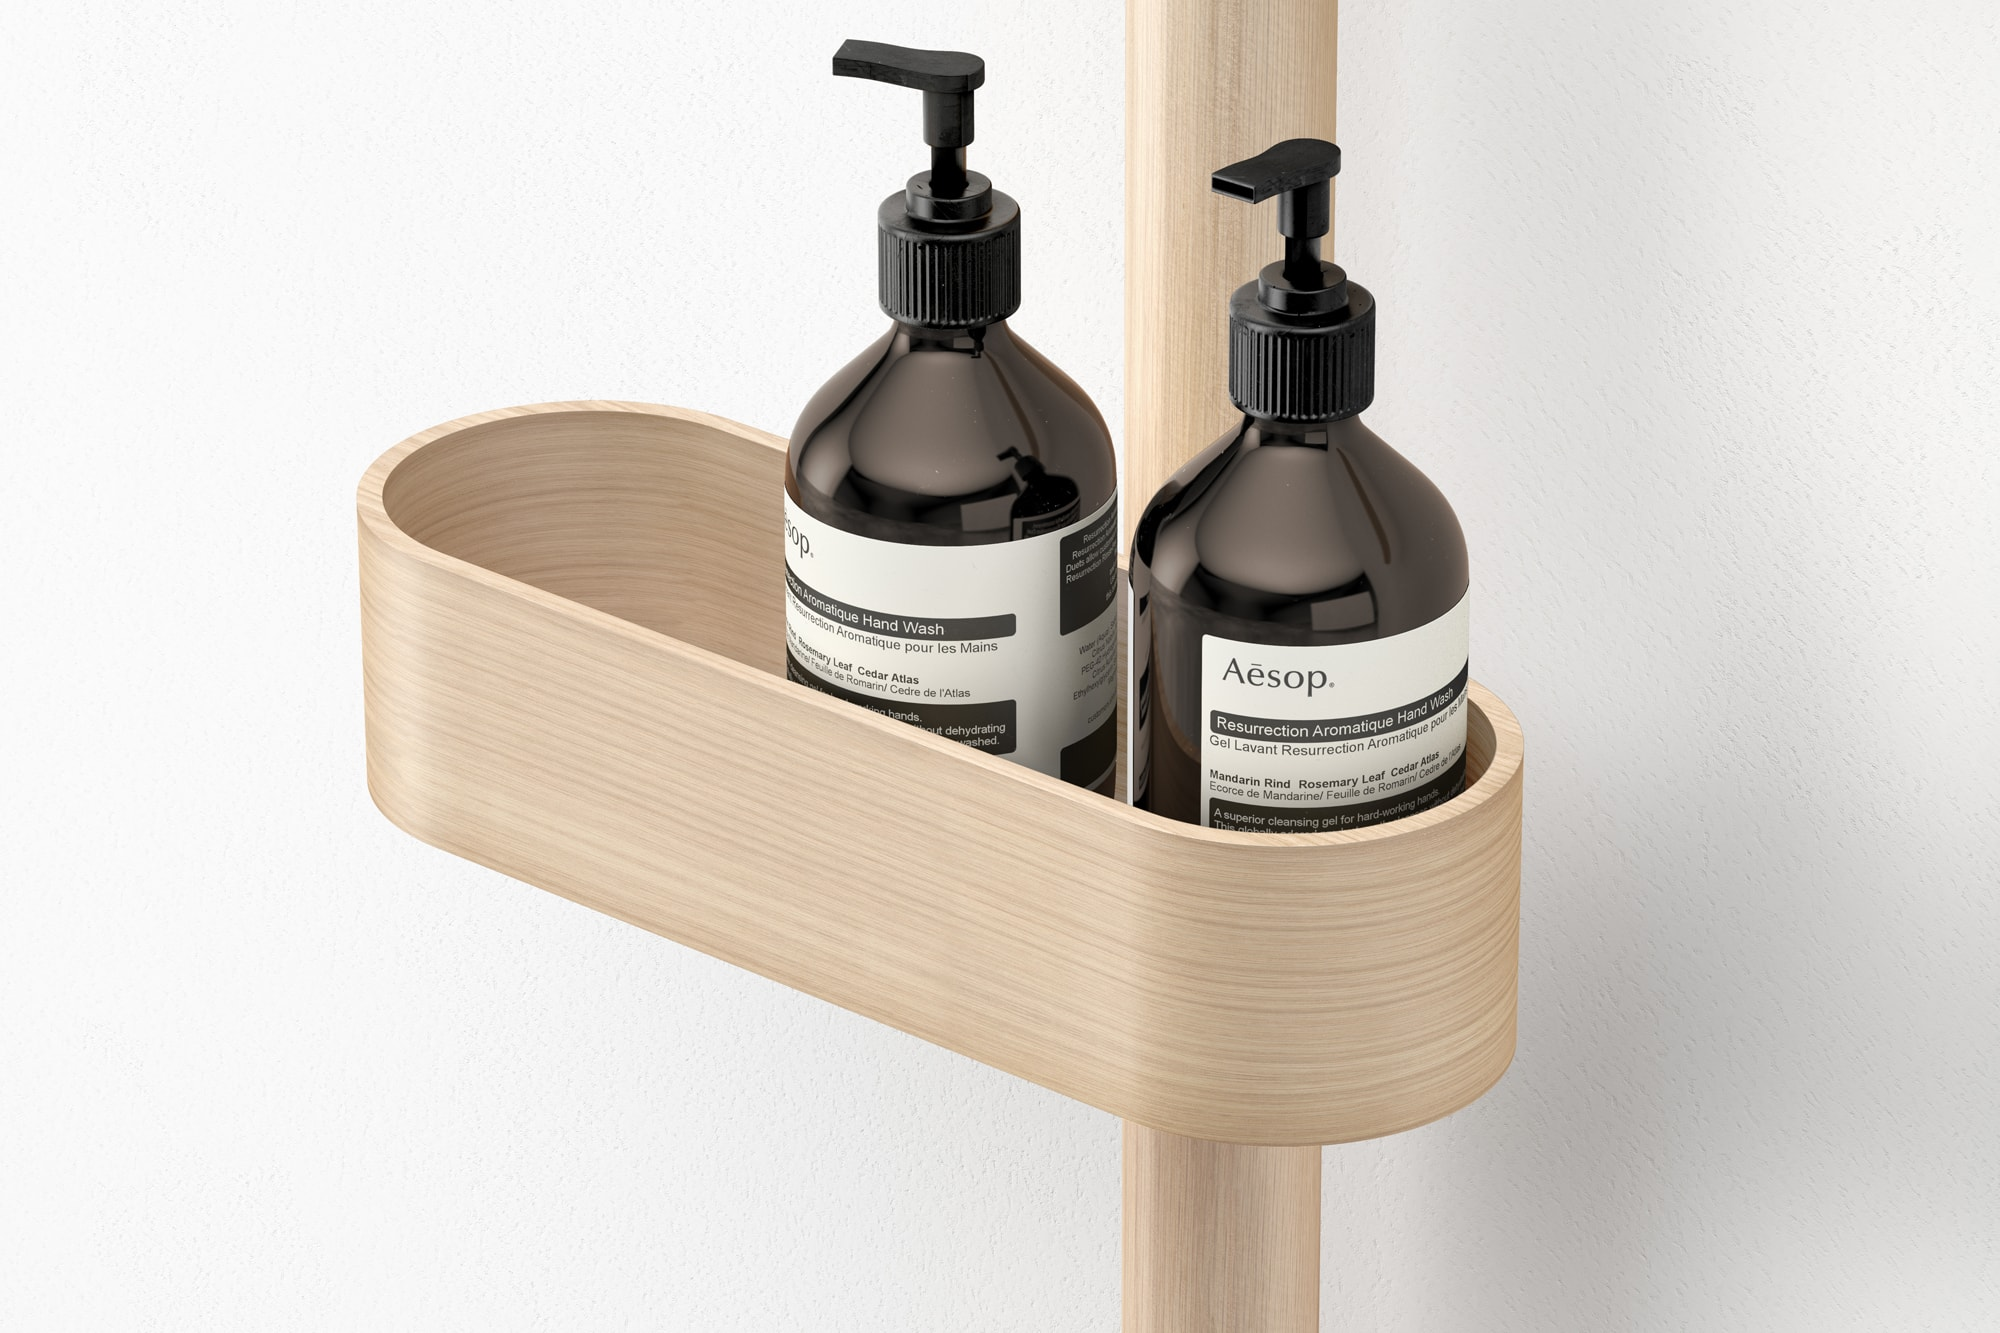 Blond-Industrial-Product-Design-Agency-London-Made-Bathroom-Furniture-15